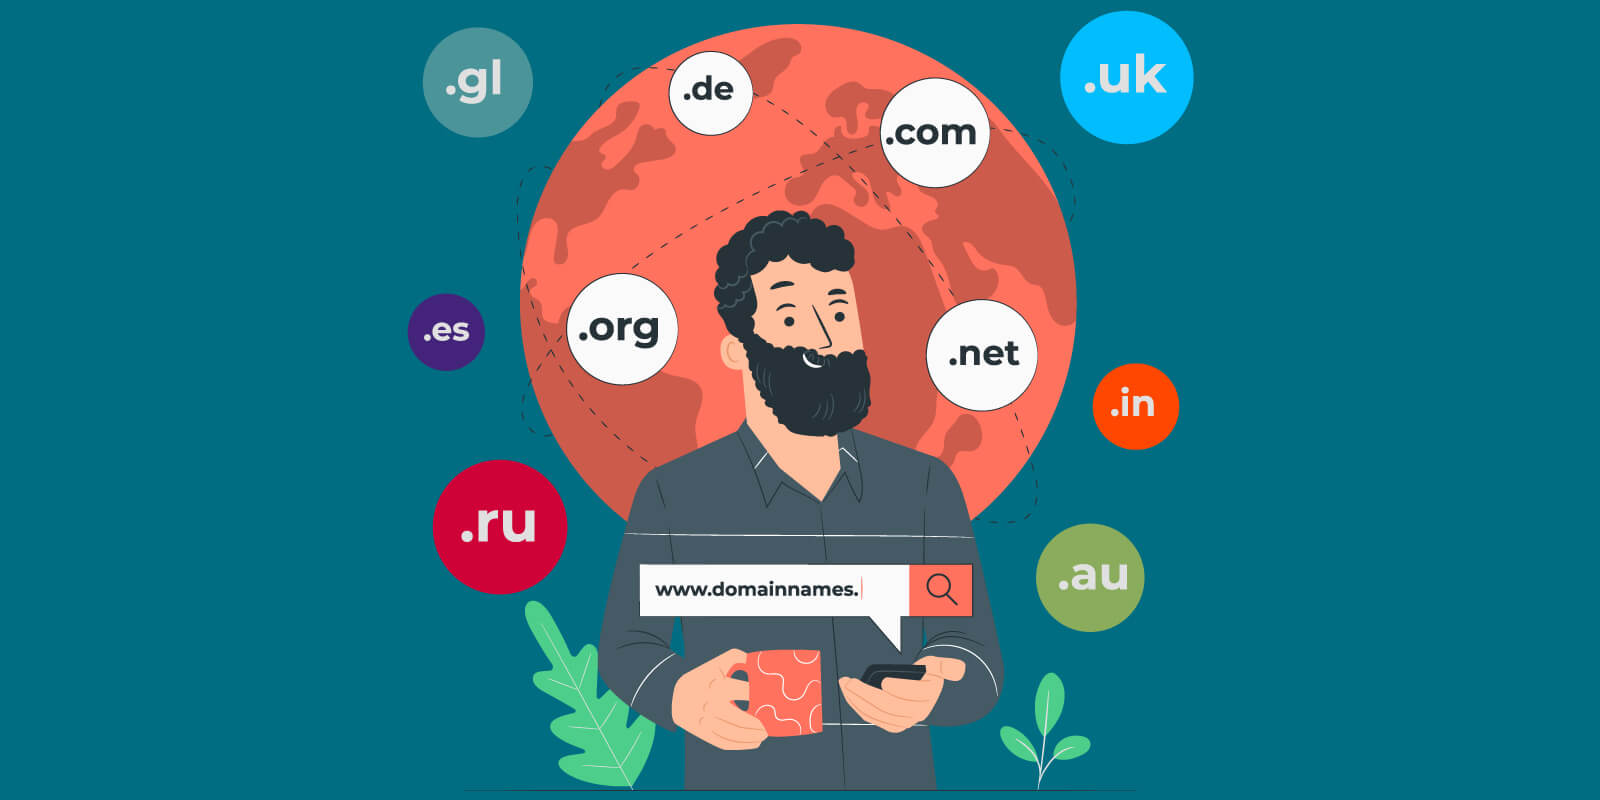 How to check if a domain is available?